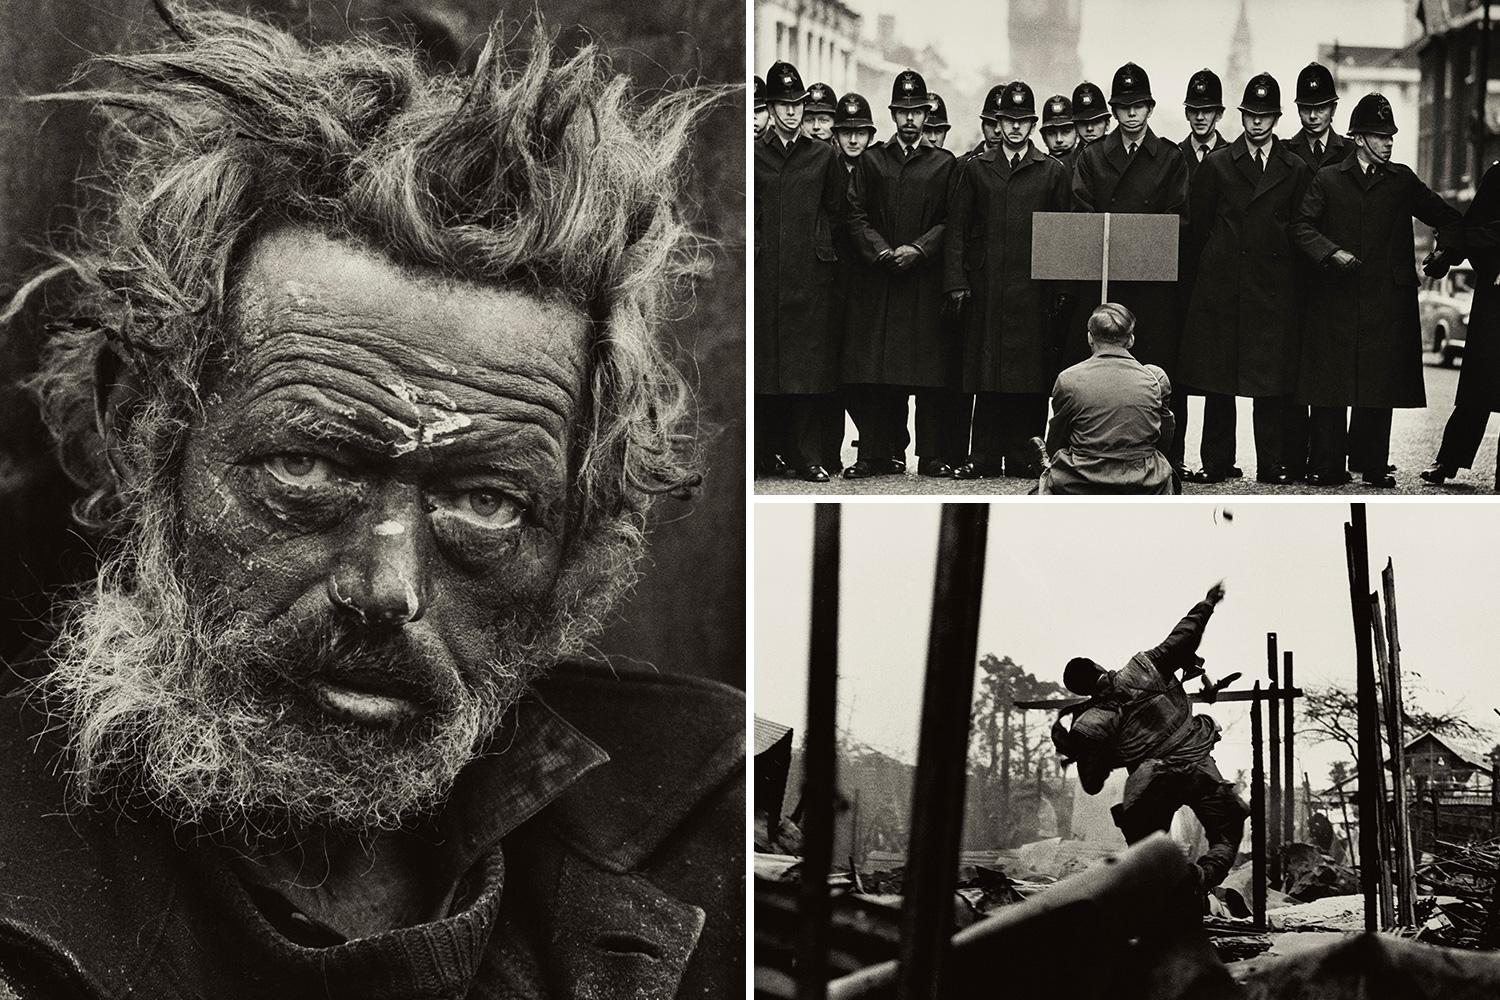 New exhibition from legendary British photographer Don McCullin captures war zones from Vietnam to Belfast